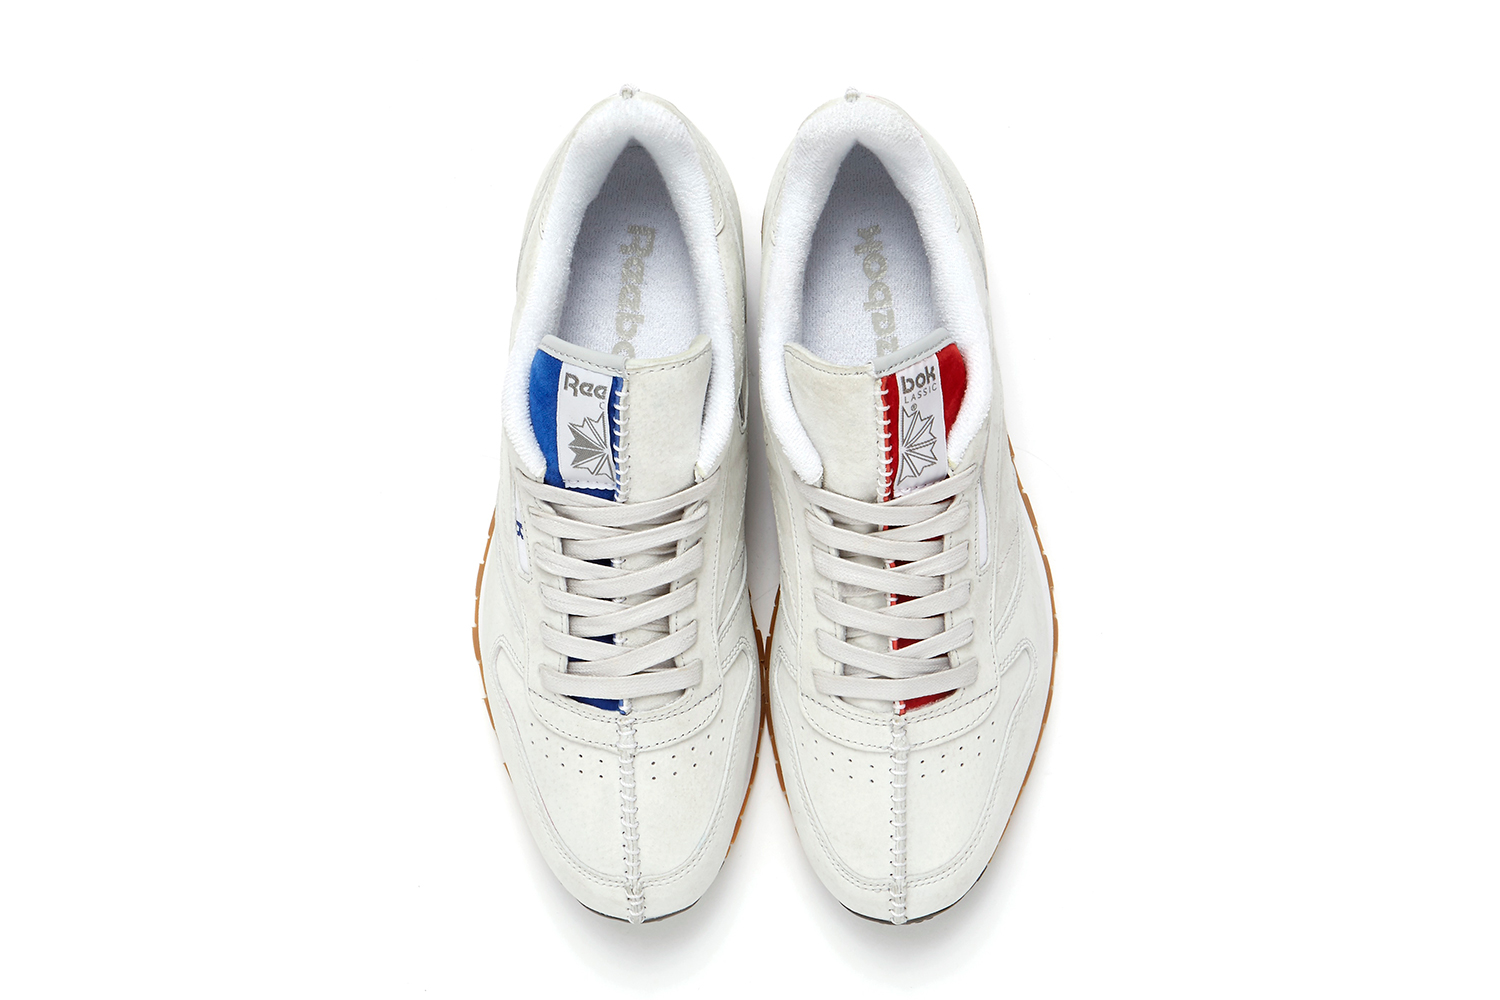 kendrick-lamar-reebok-classic-leather-deconstructed-03.jpg